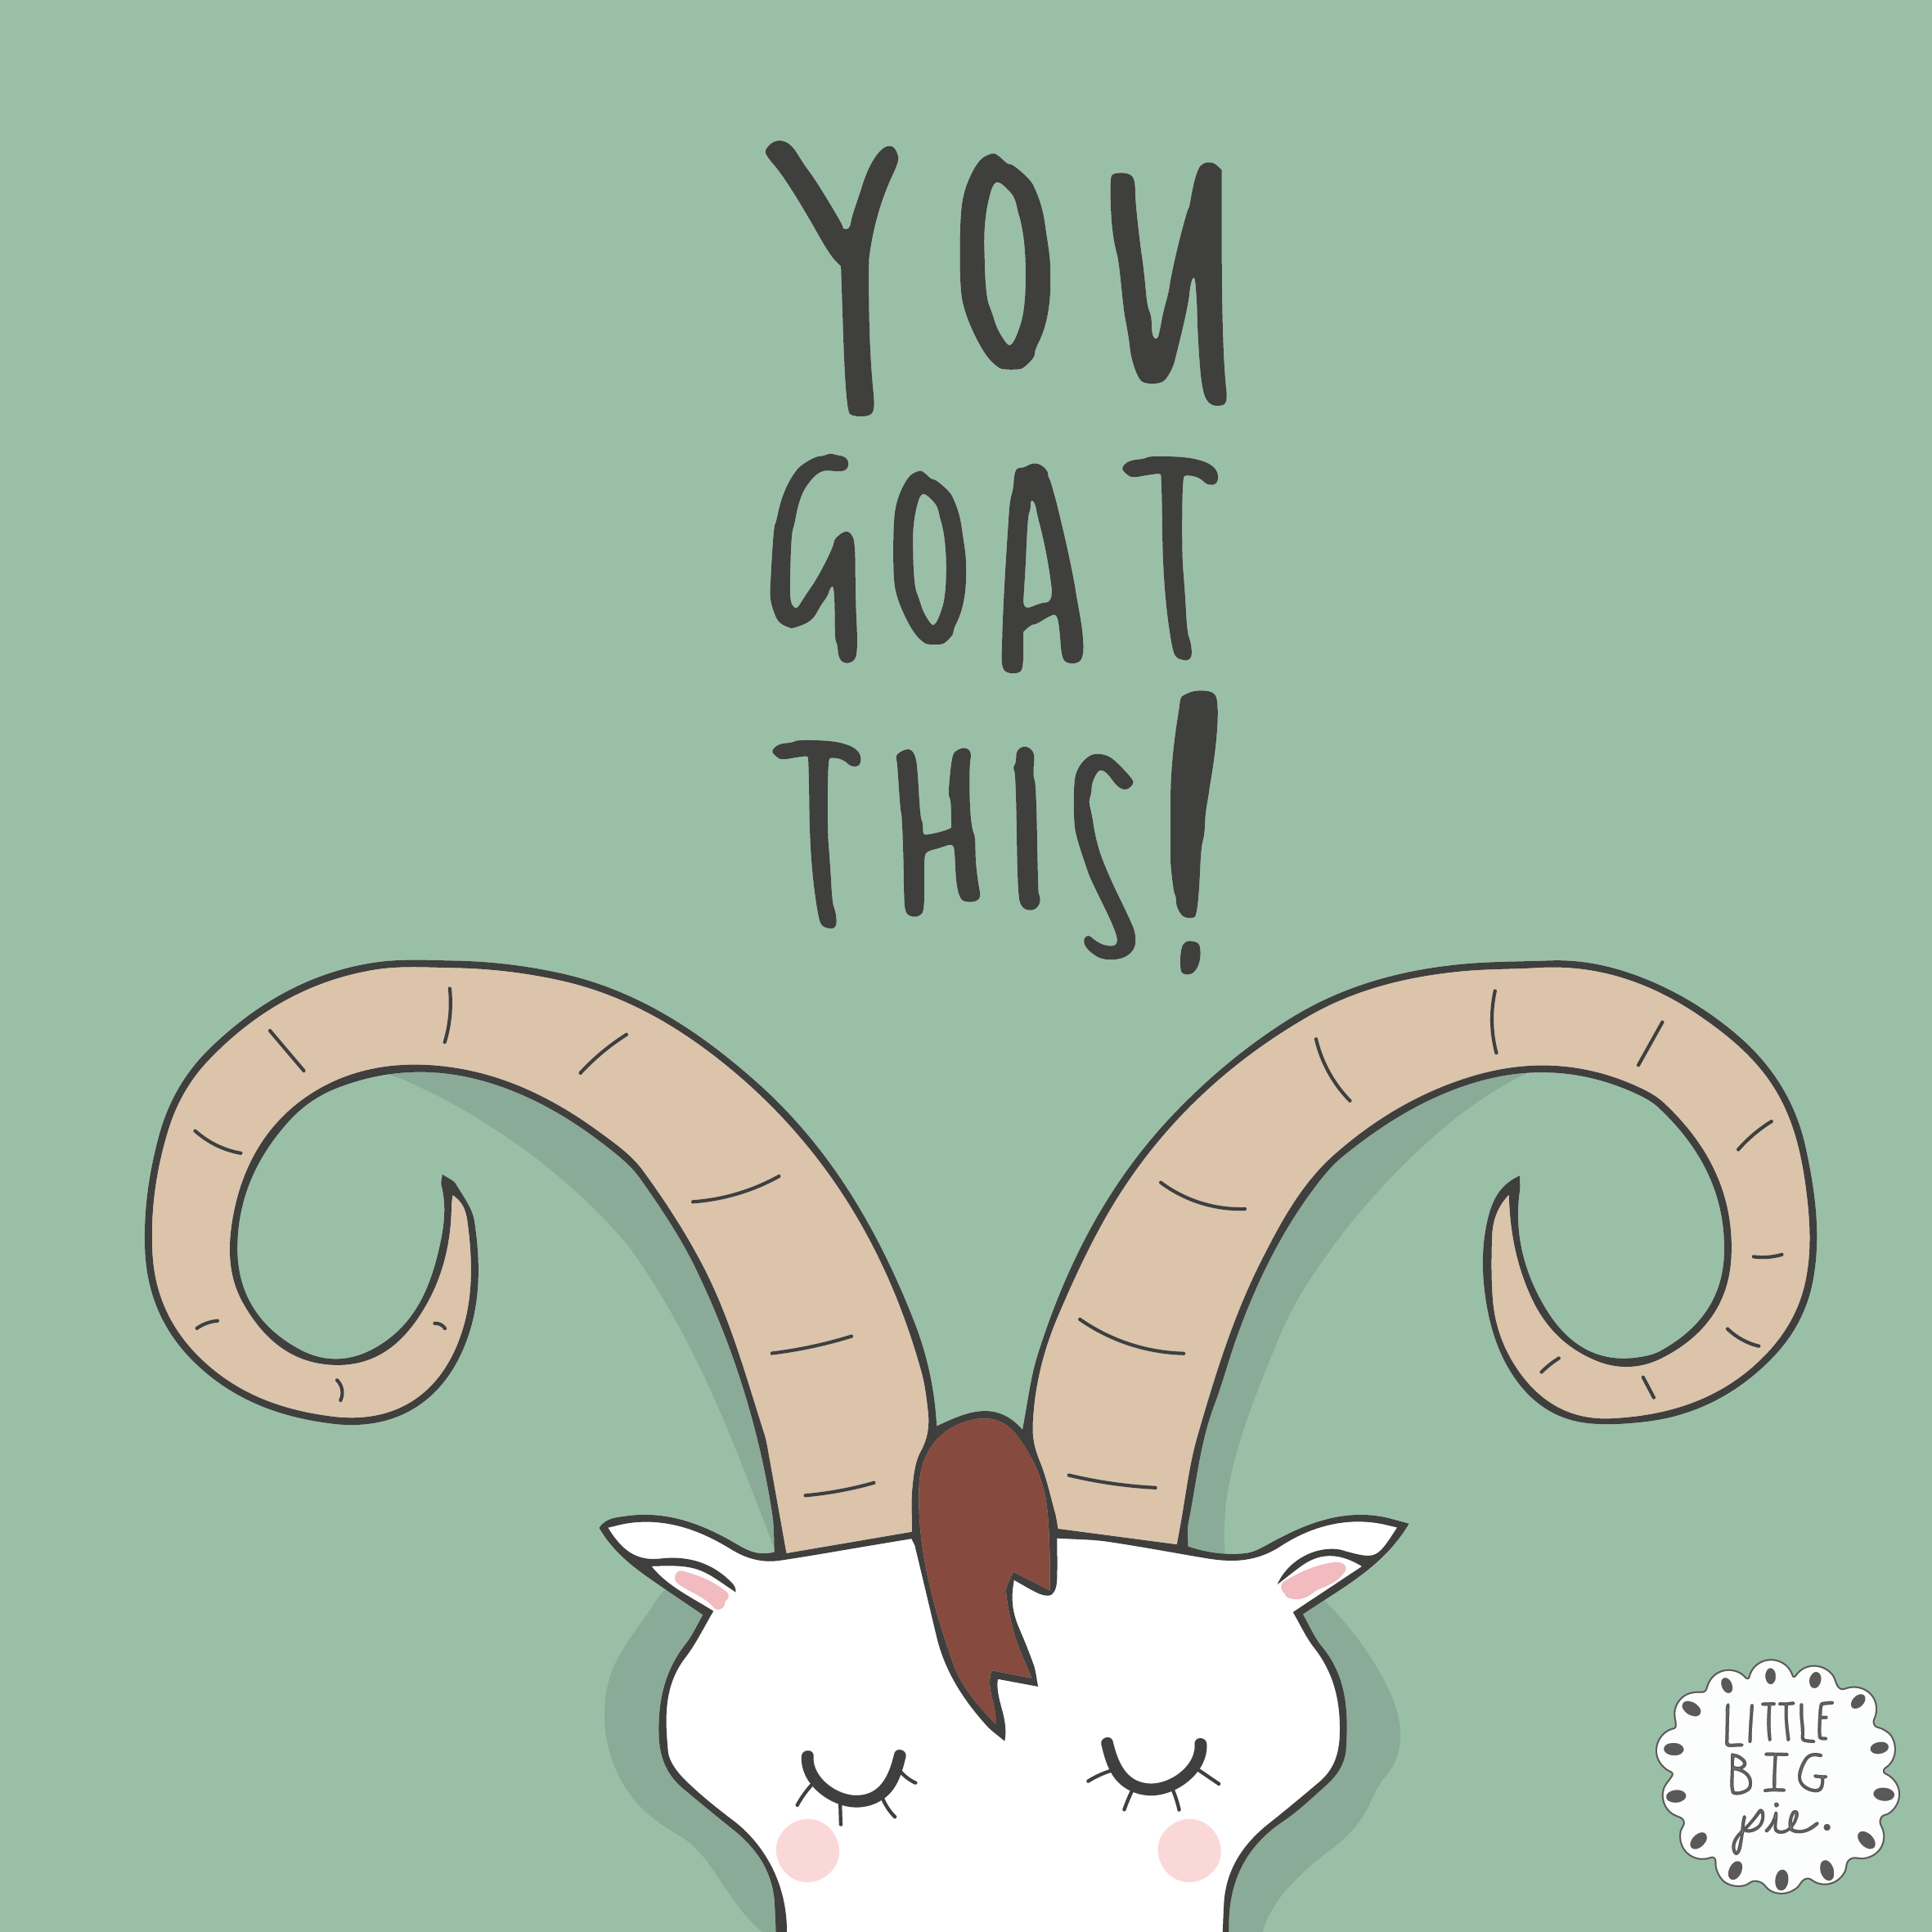 think of your day positively you goat this 🐑 littlebigpie